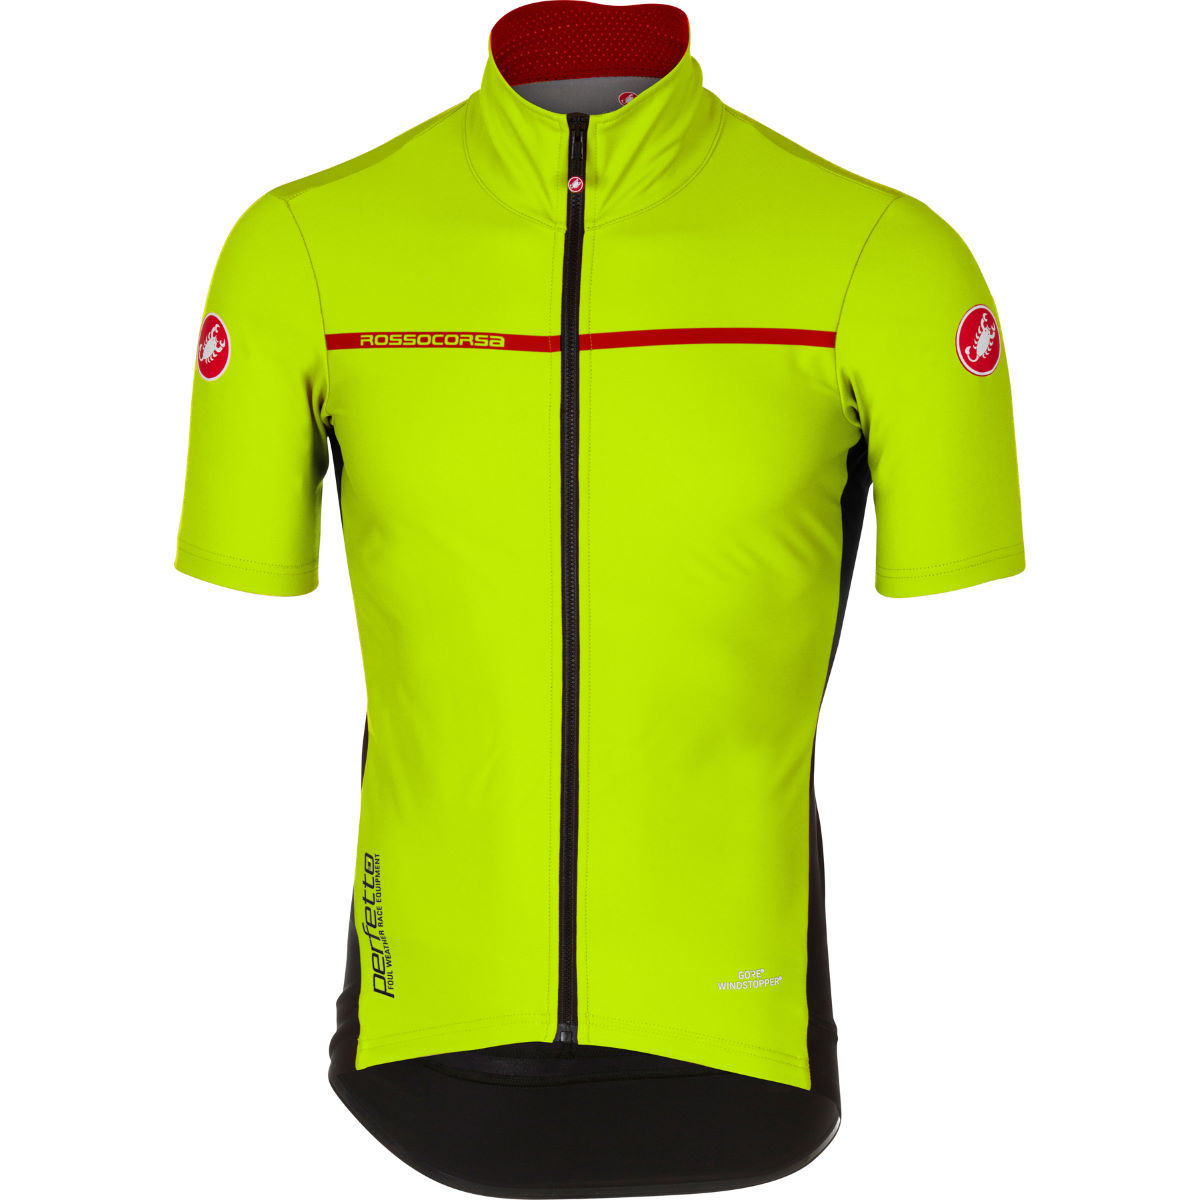 Maillot Castelli Perfetto Light 2 - M Yellow Fluo